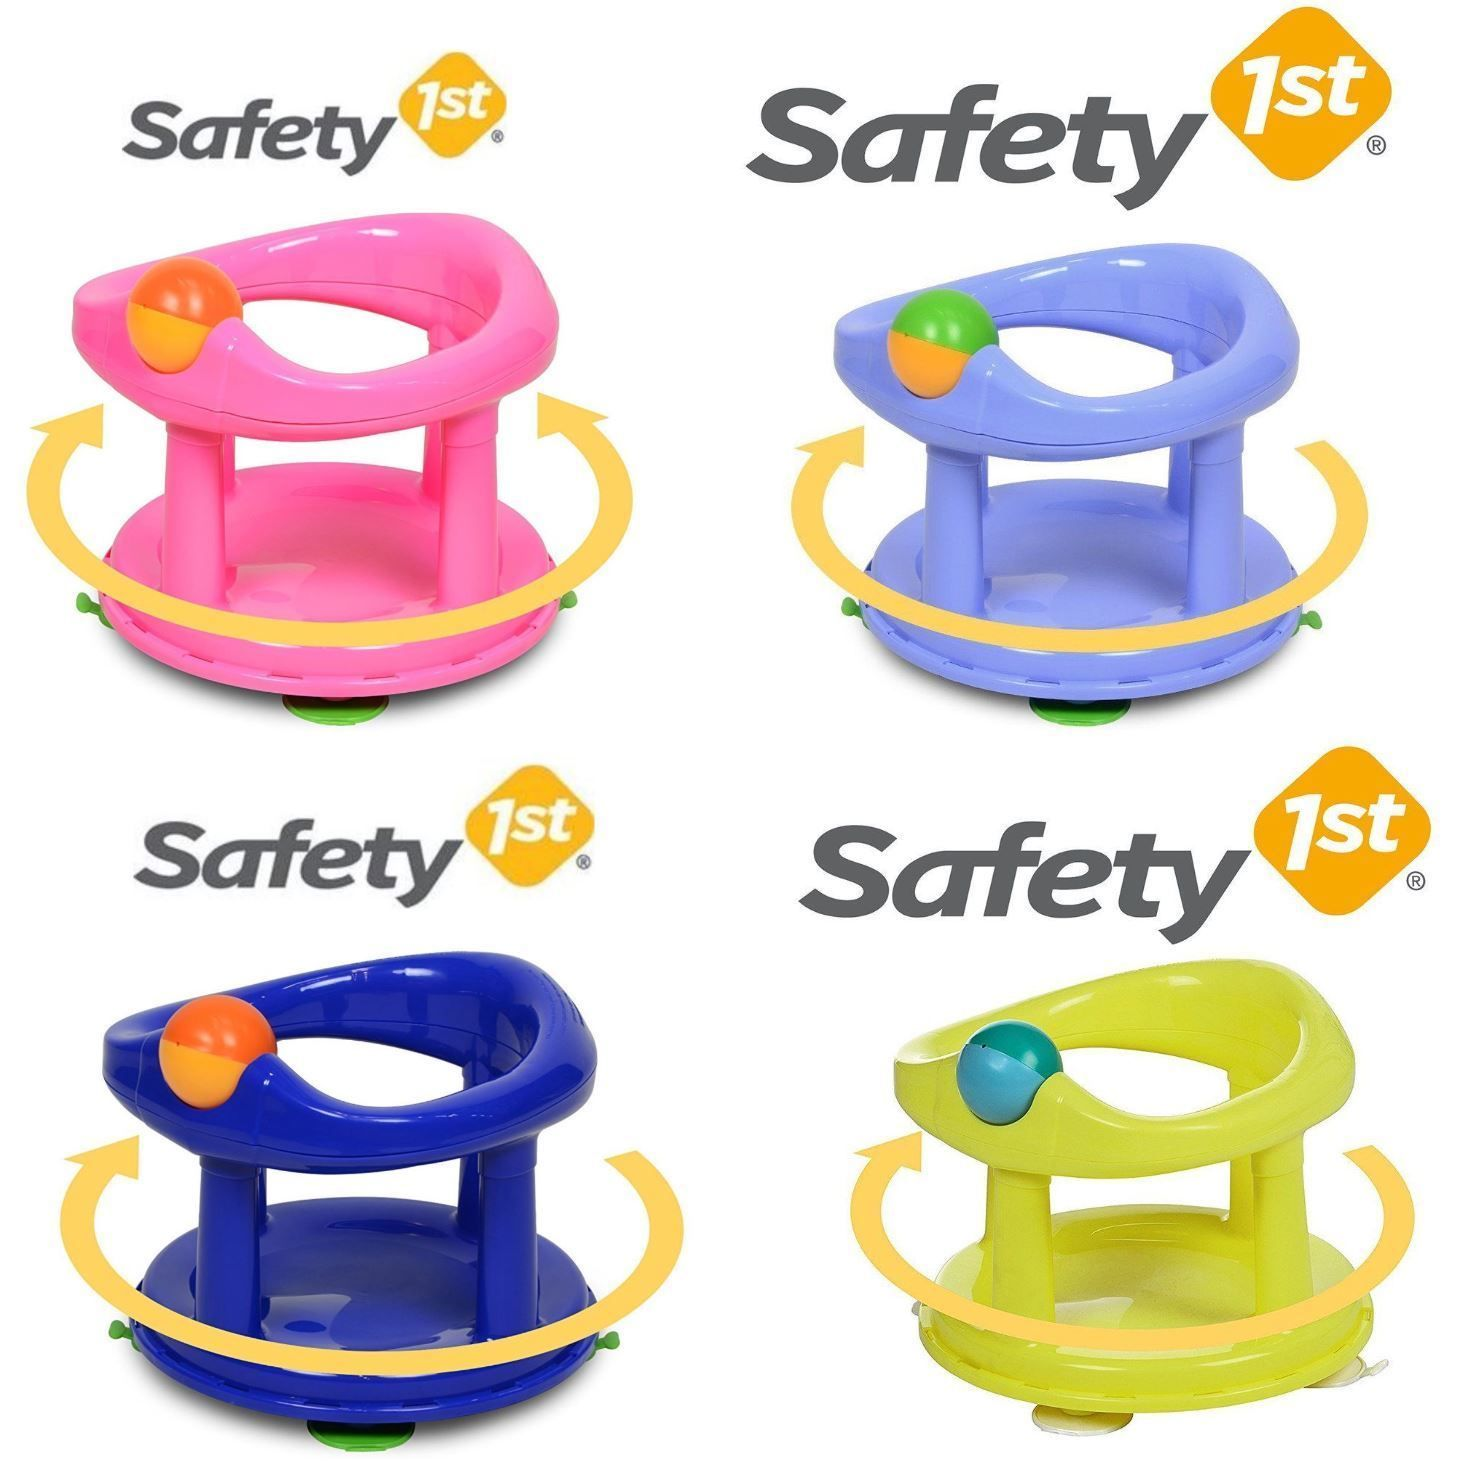 Safety First Swivel Baby Bath Tub Rotating Safety 1st Ring Seat New ...